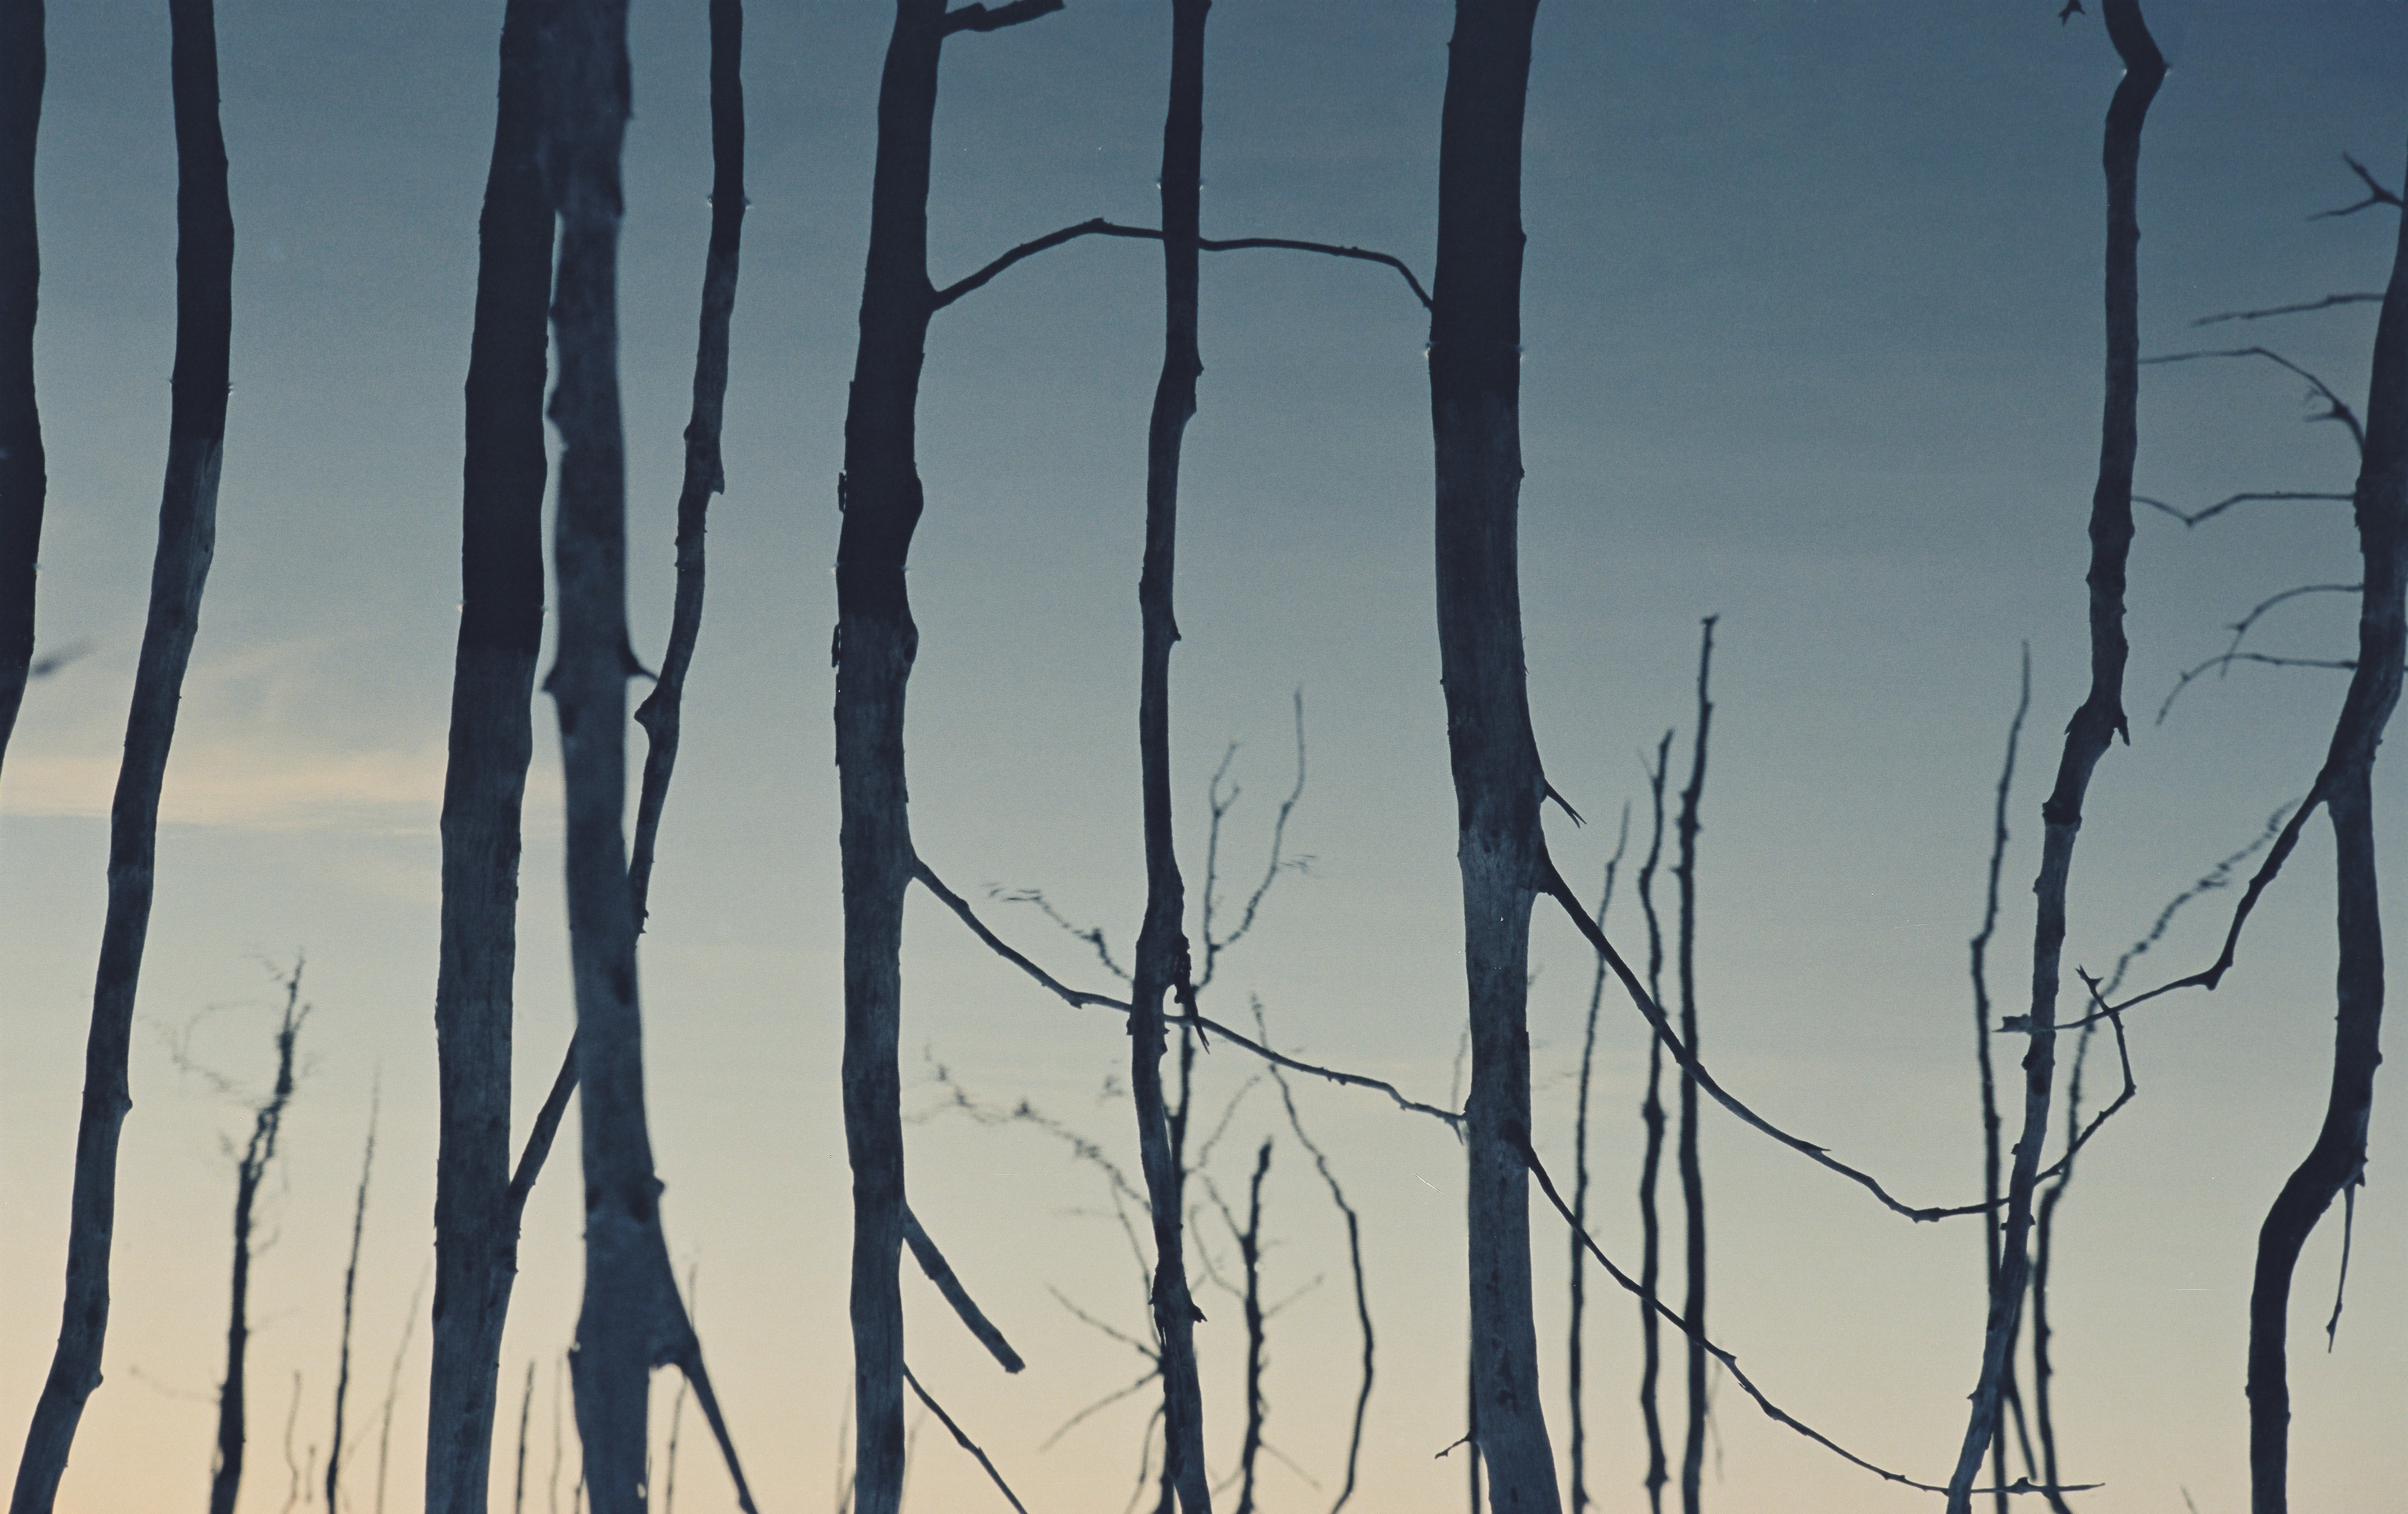 A film still depicts an image of bare tree branches reflected on water